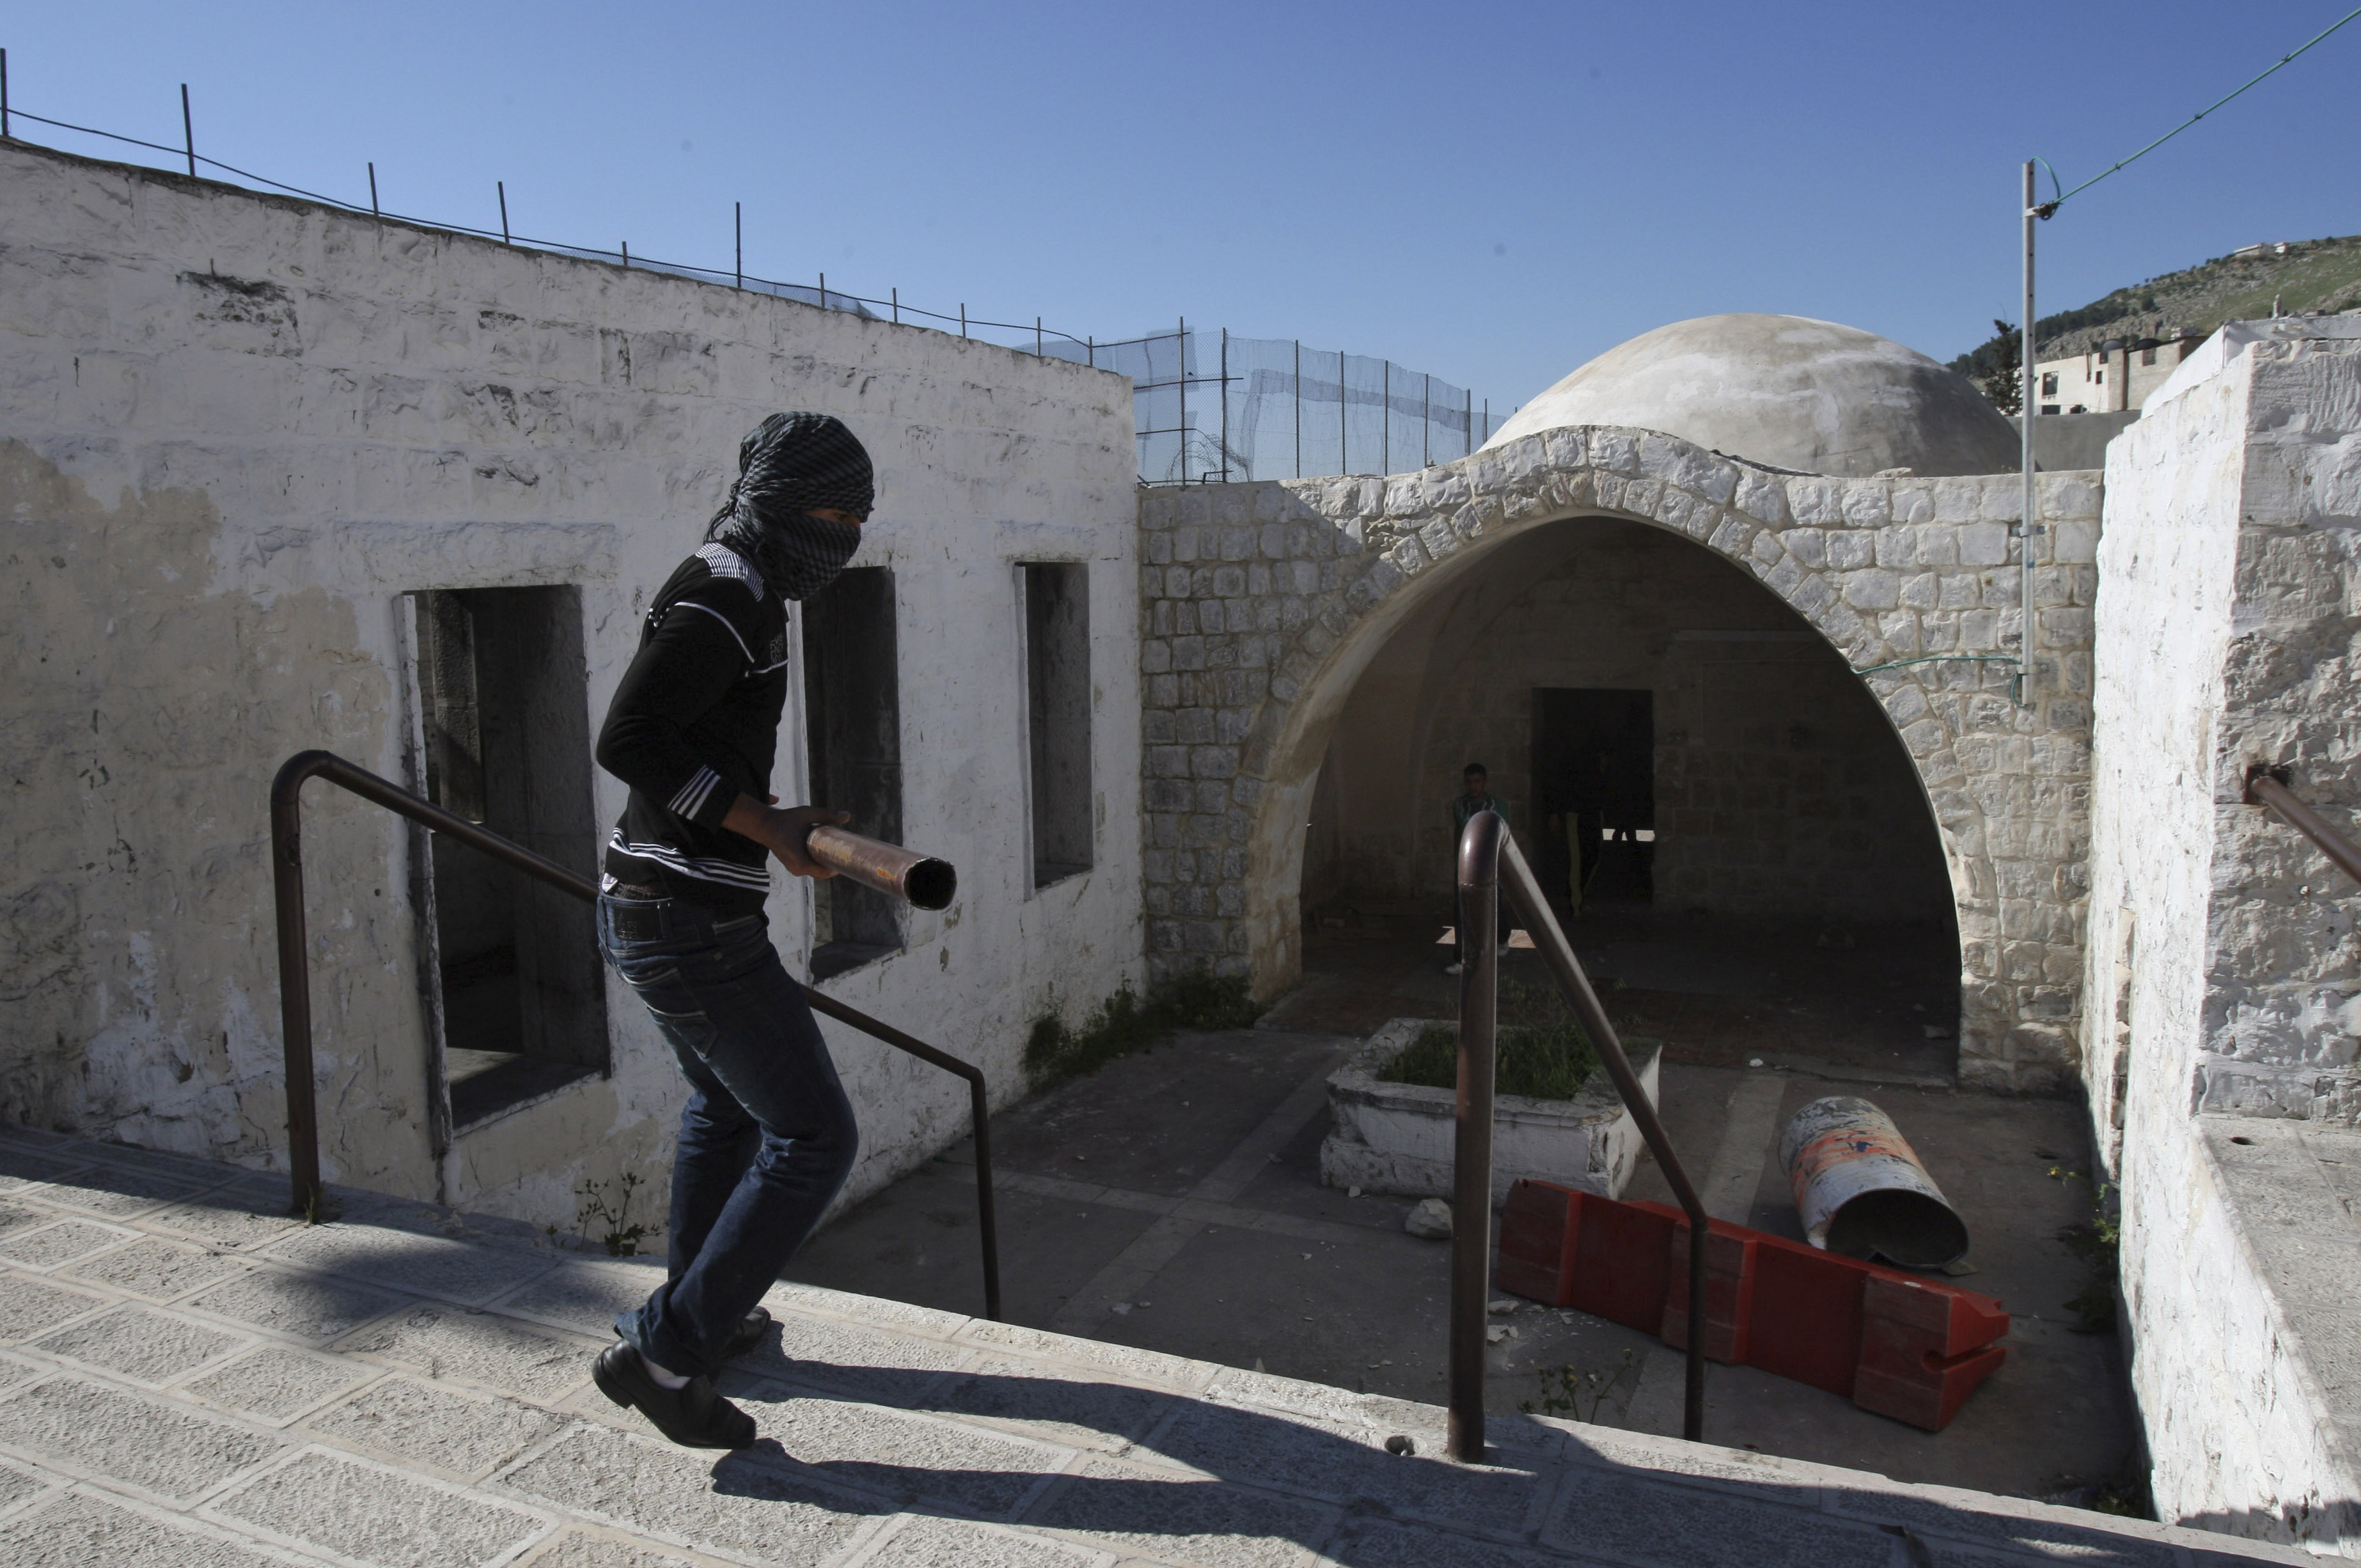 FILE - A masked Palestinian youth walks into  Joseph's Tomb during clashes with Israeli troops nearby, in the West Bank city of Nablus, April 24, 2011.